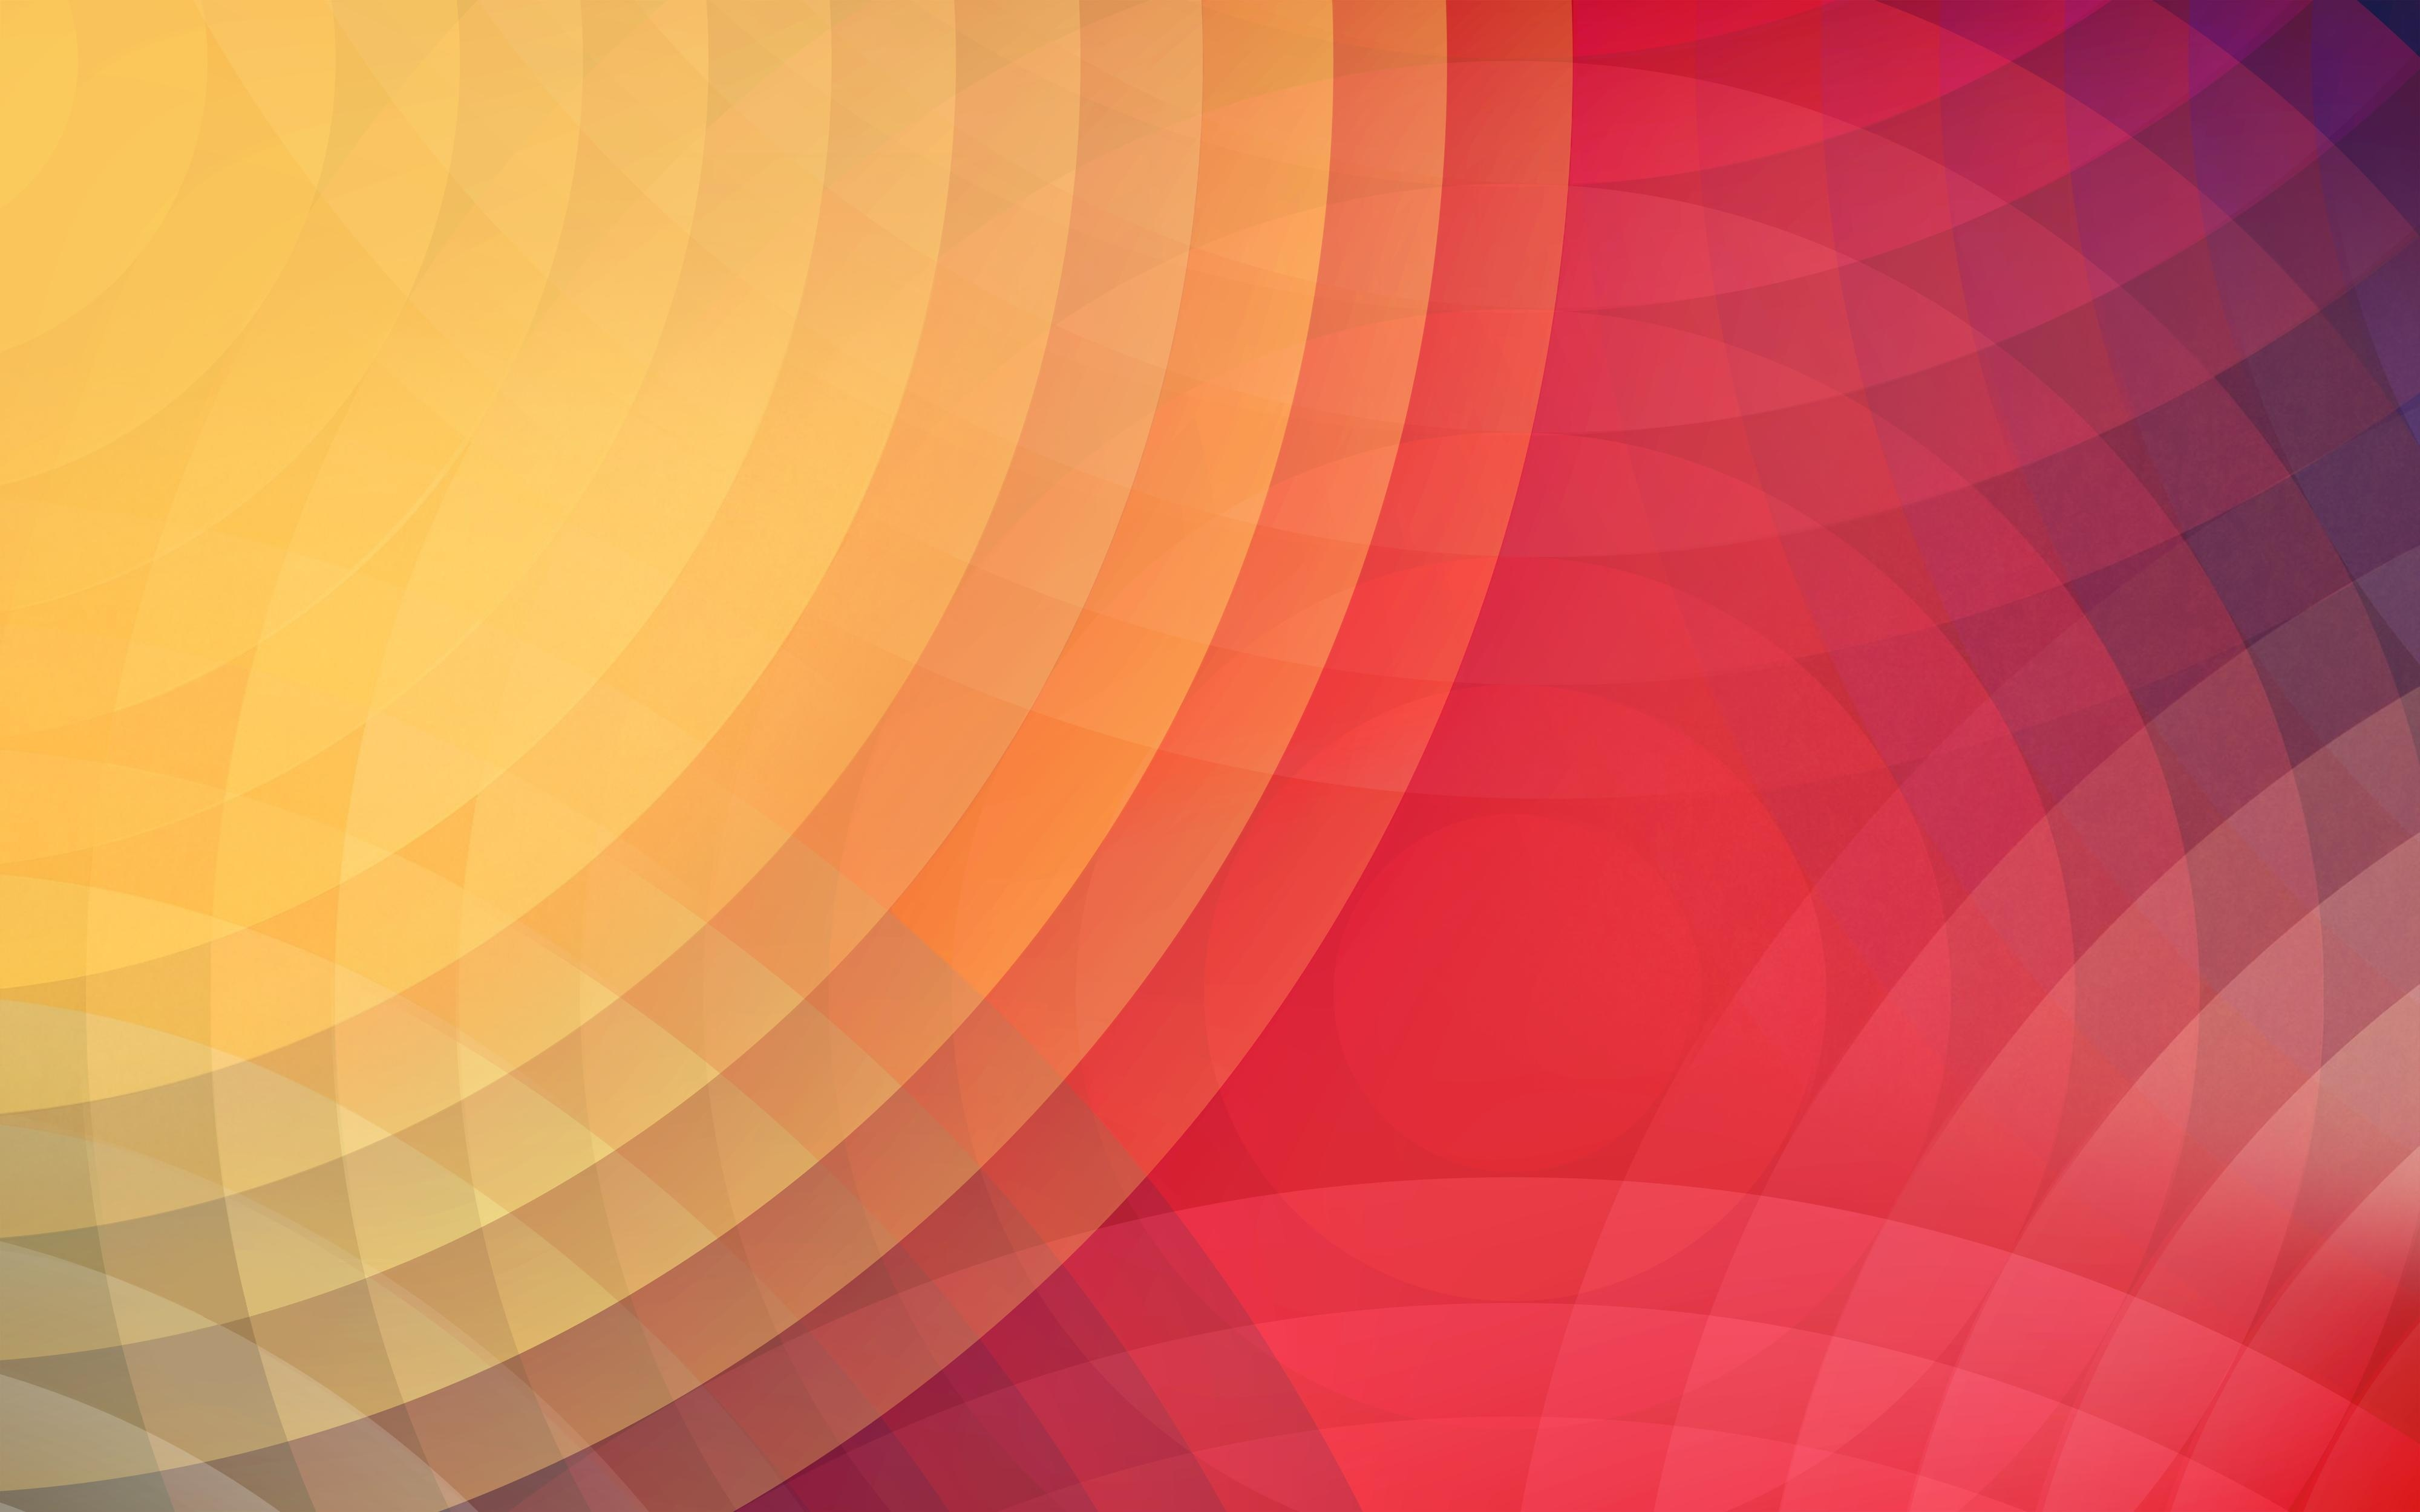 best-hd-abstract-wallpaper - amplified communications